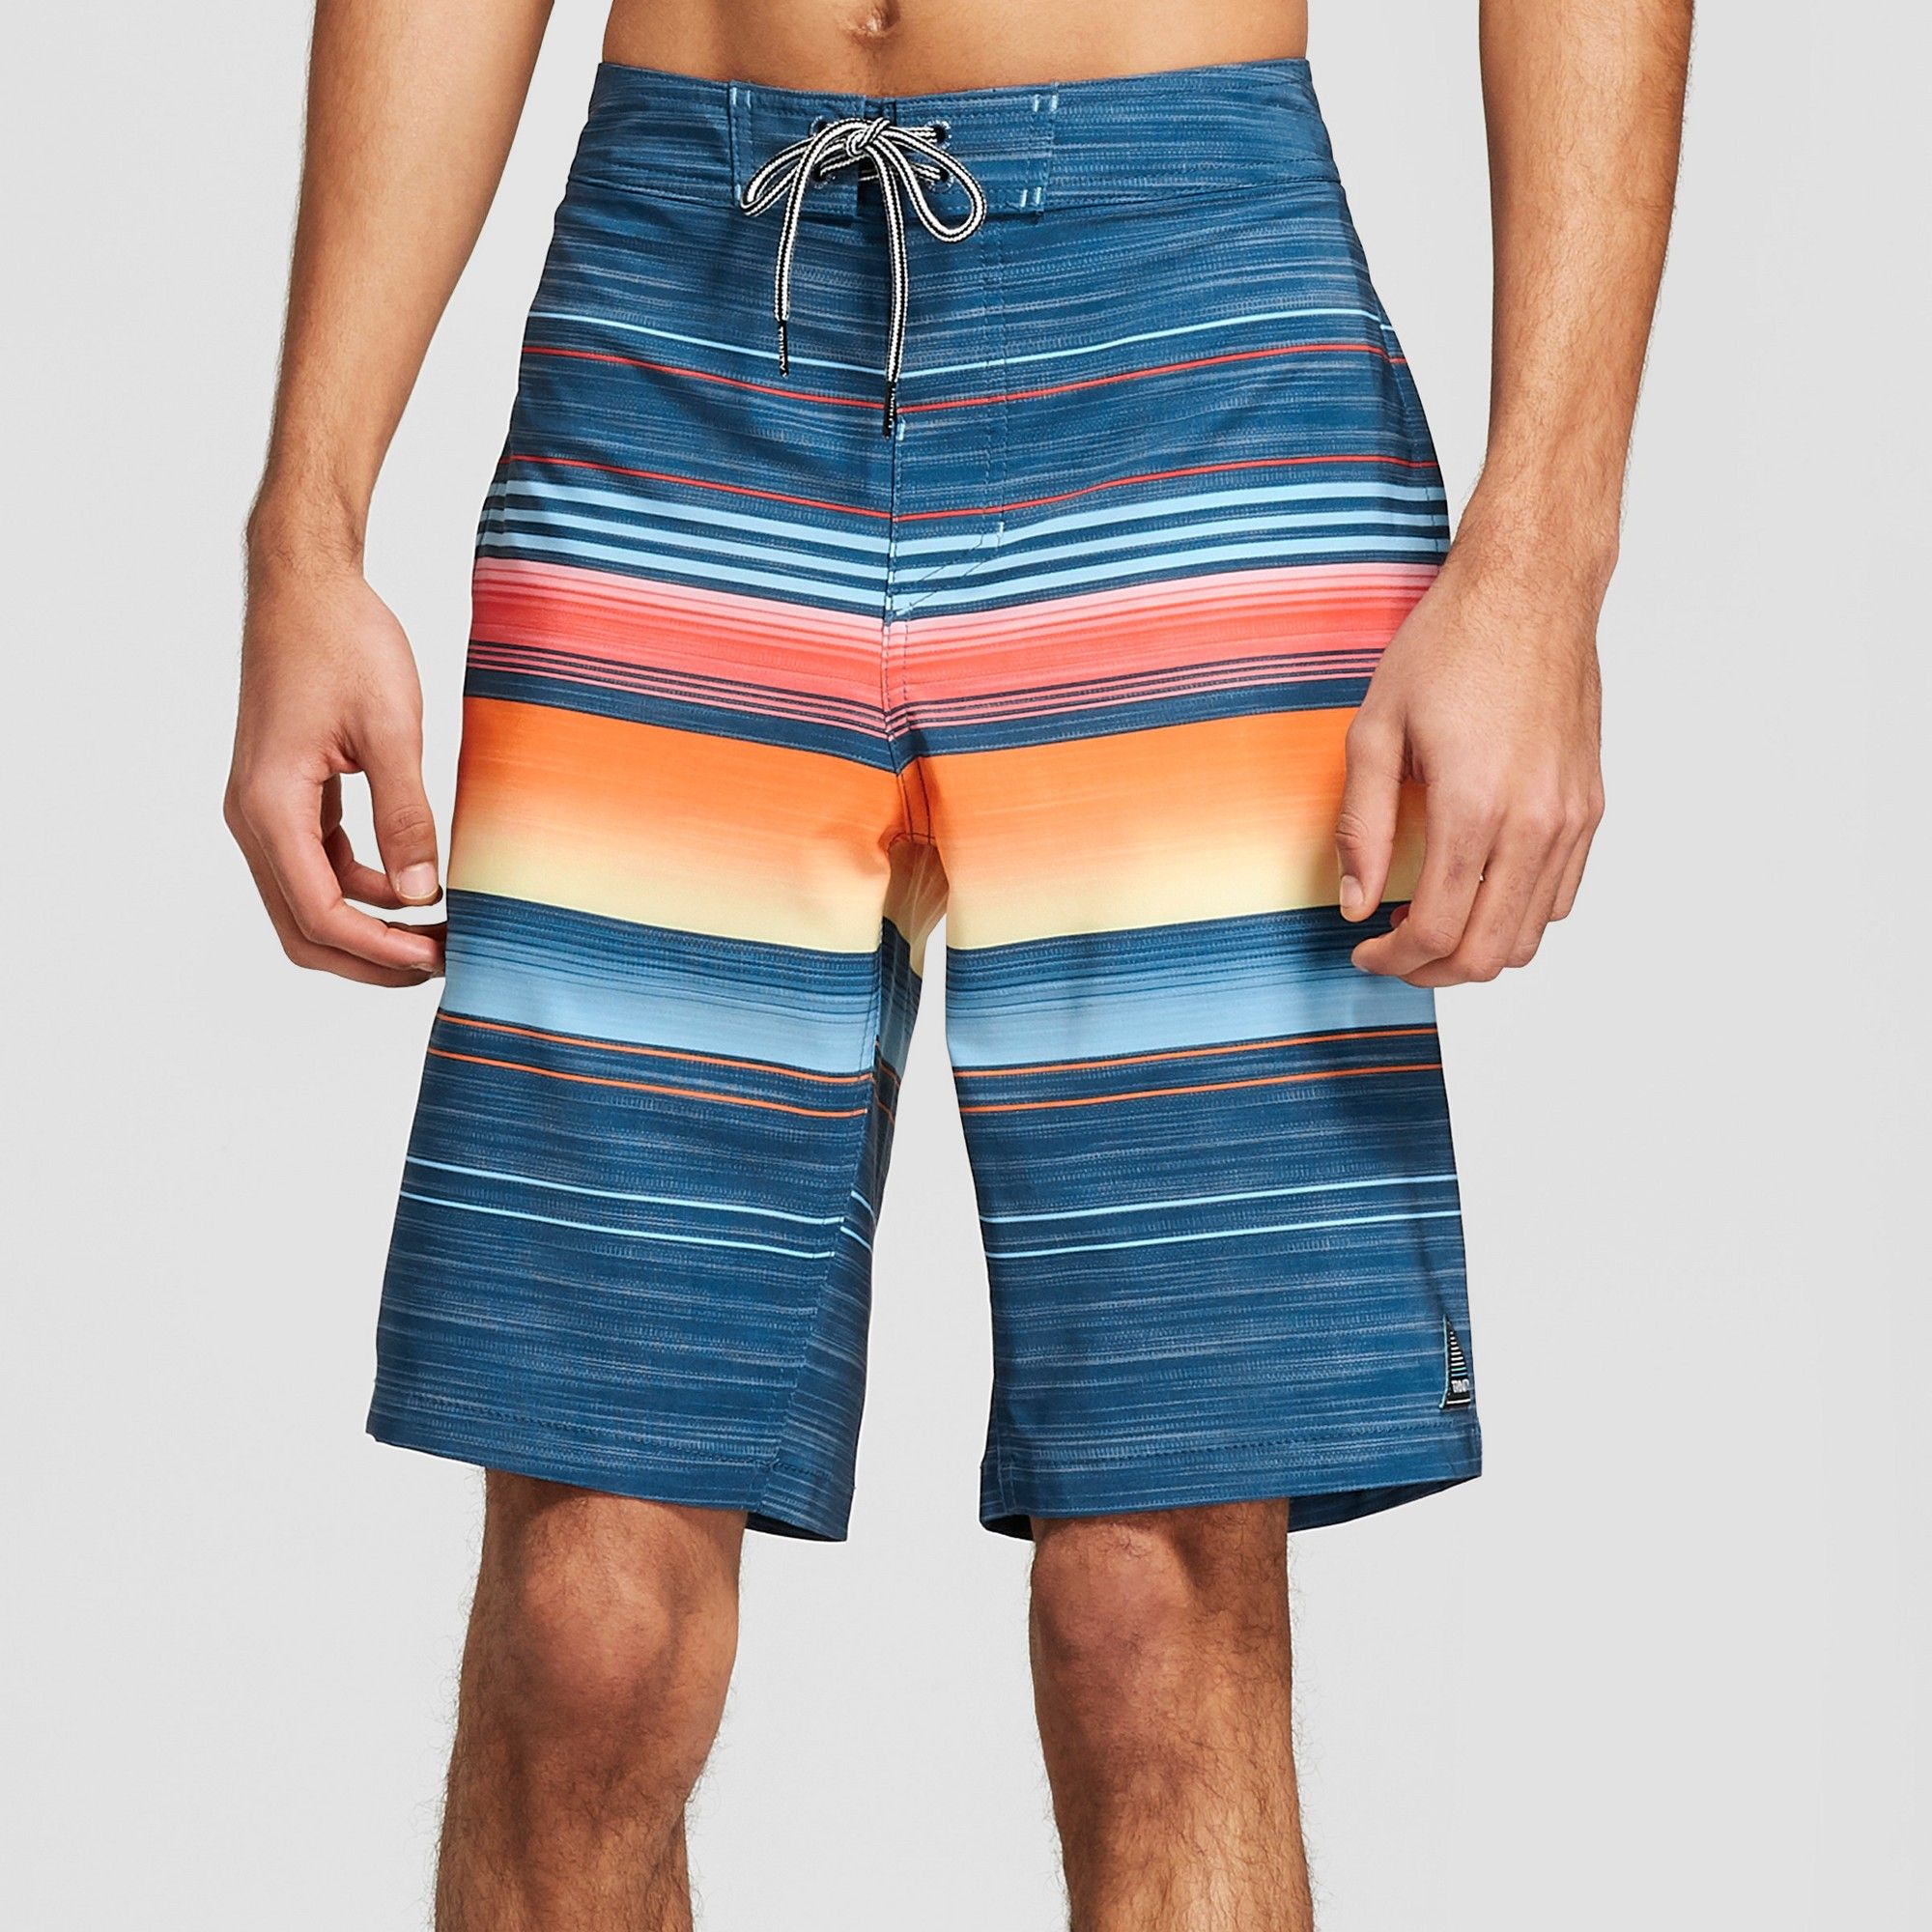 521d4eb1eda95 Trinity Collective Men's Striped 10 Blaster Board Shorts - Navy 40, Blue